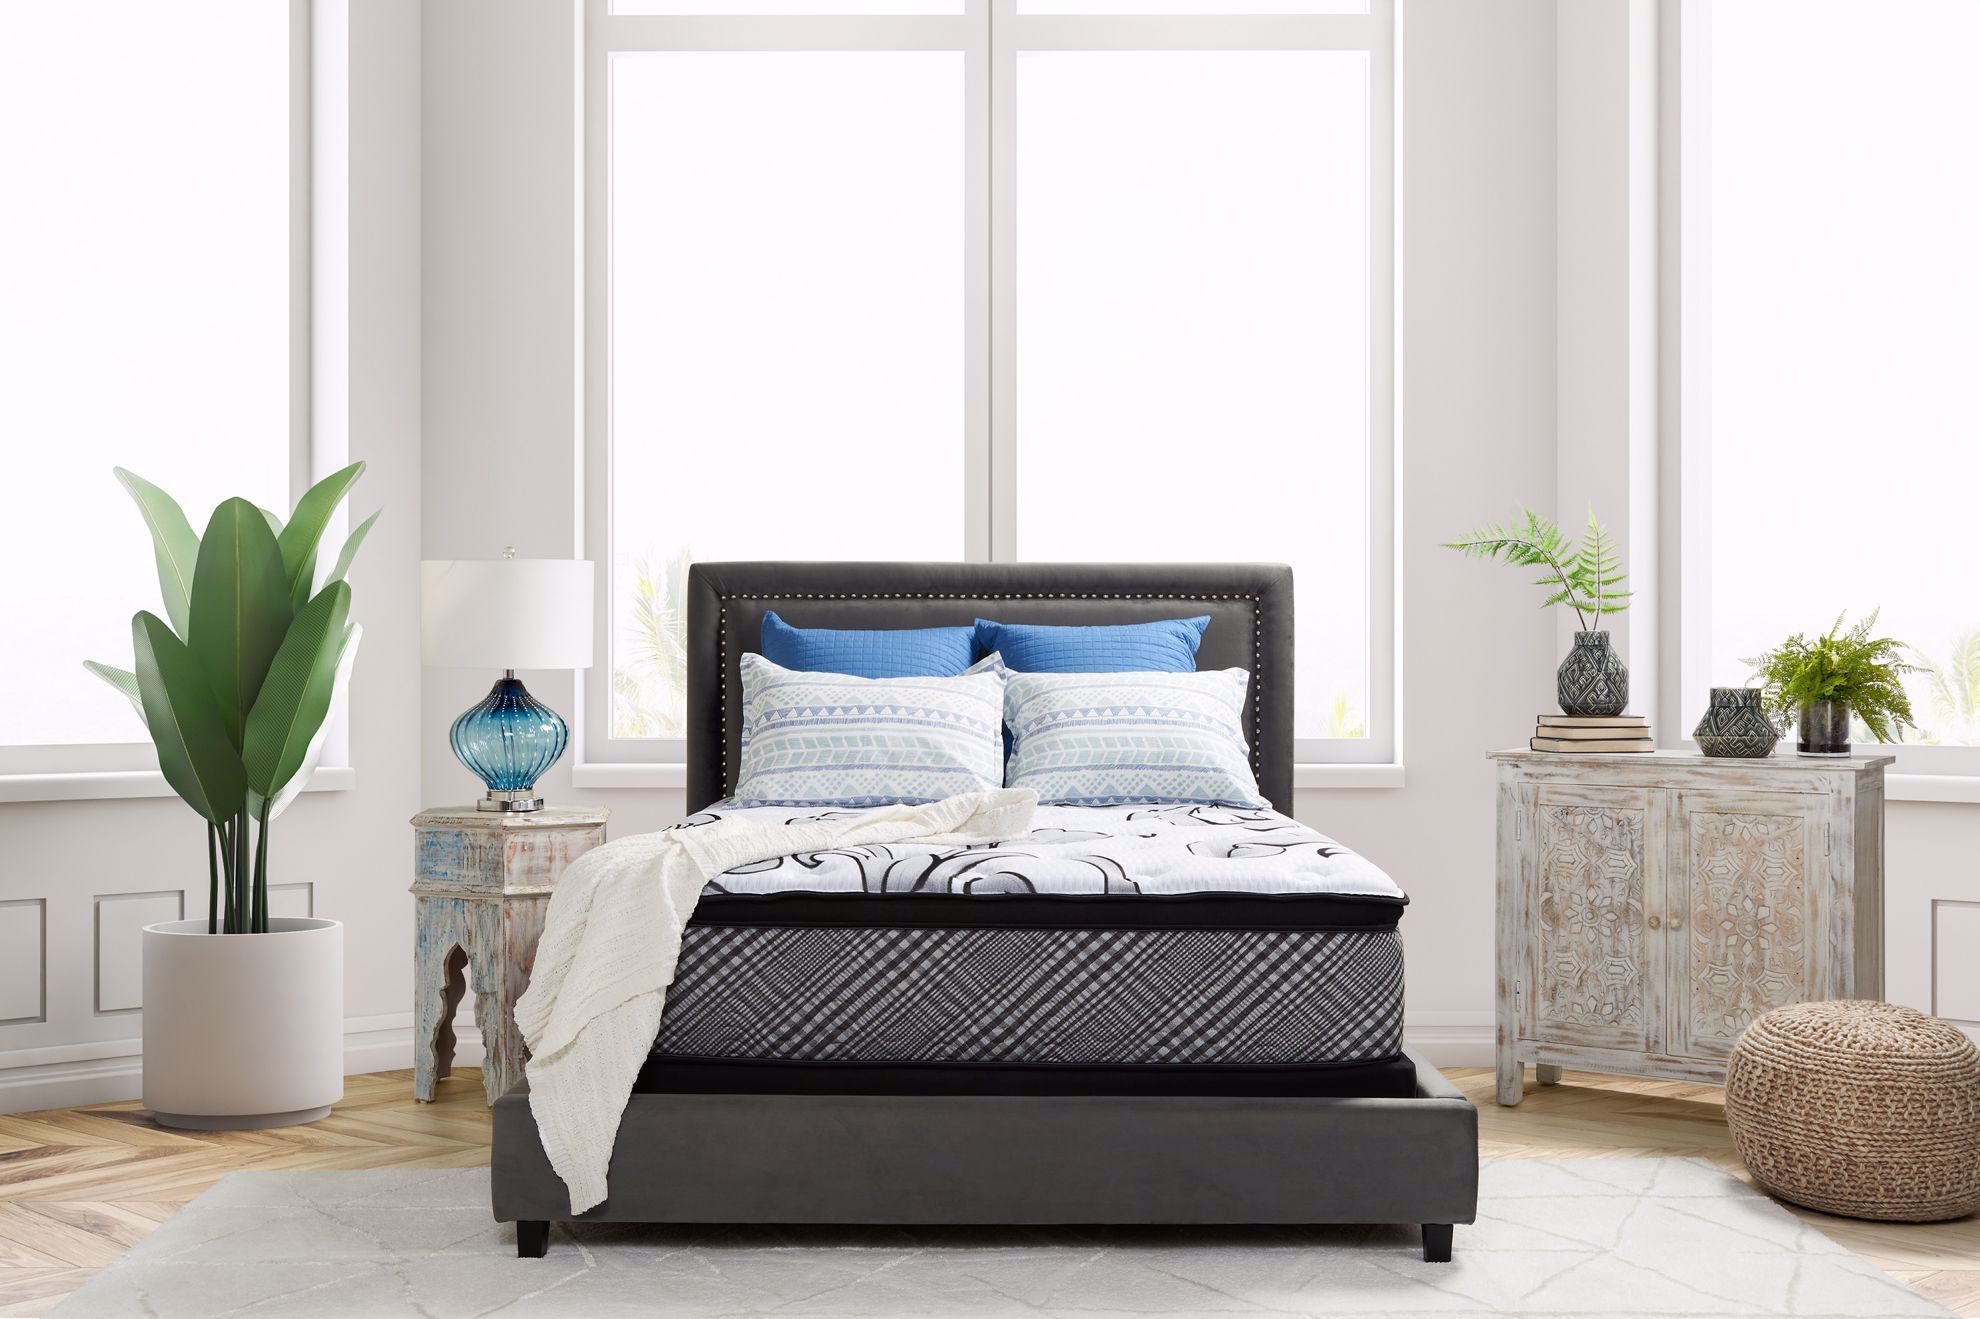 Picture of Restonic Darlington EuroTop Twin XL Mattress Set